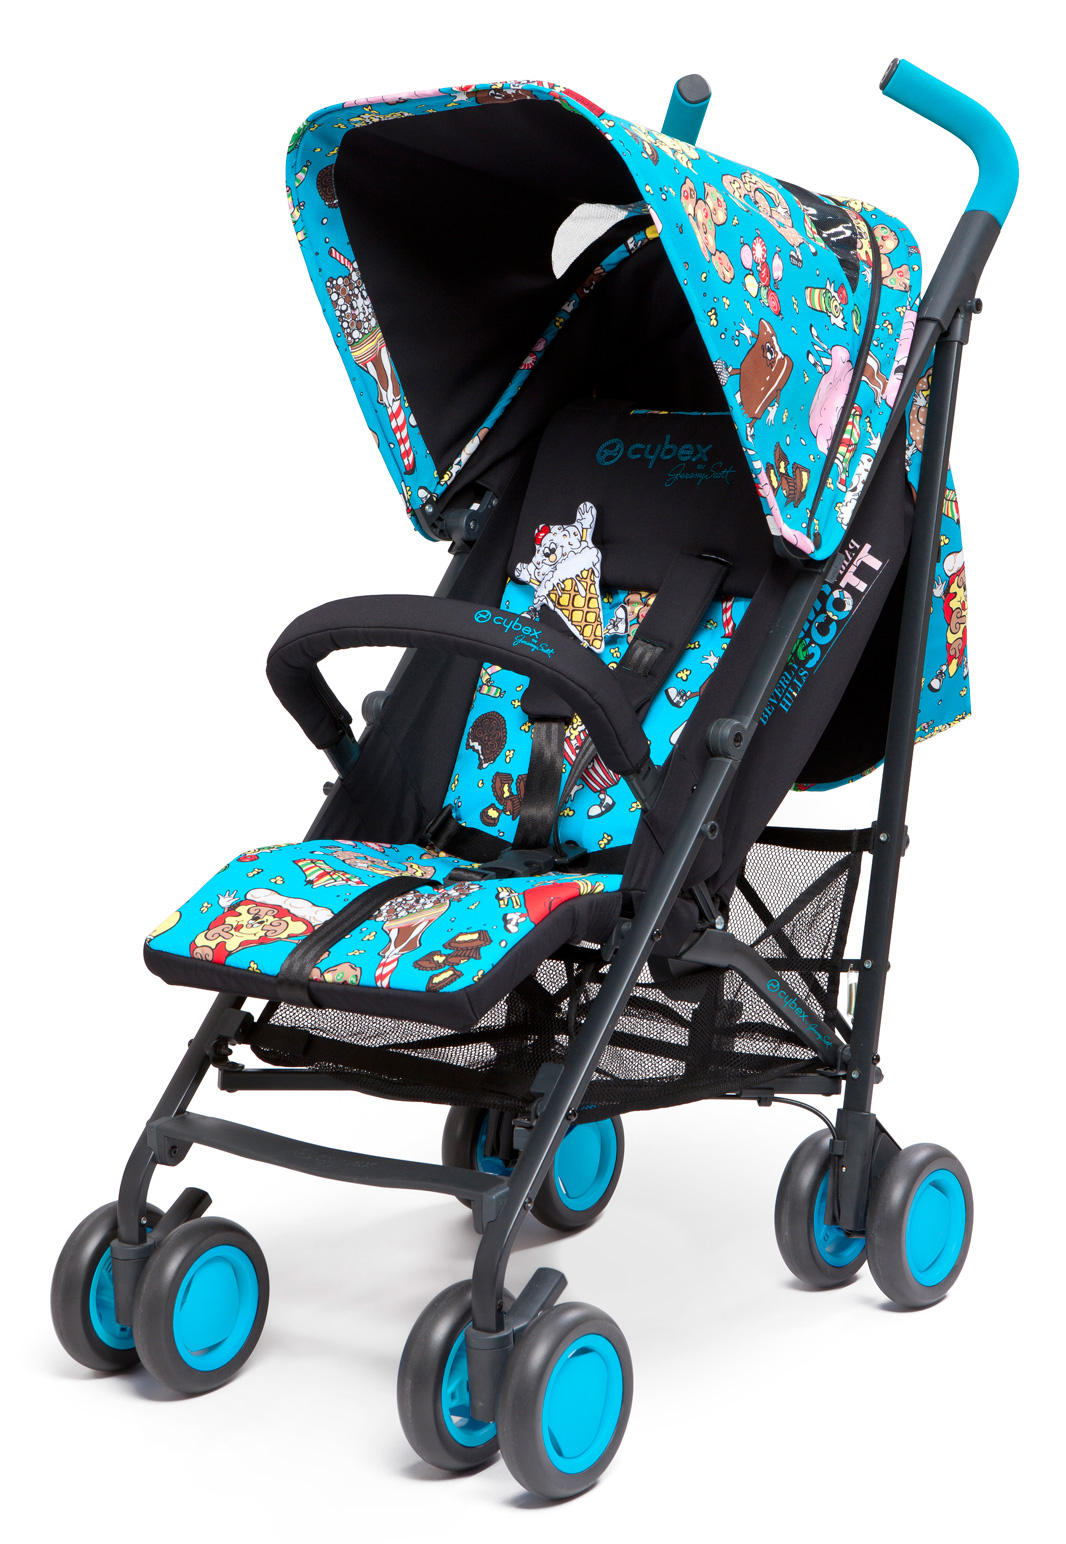 Cybex Onyx Jeremy Scott multicolour